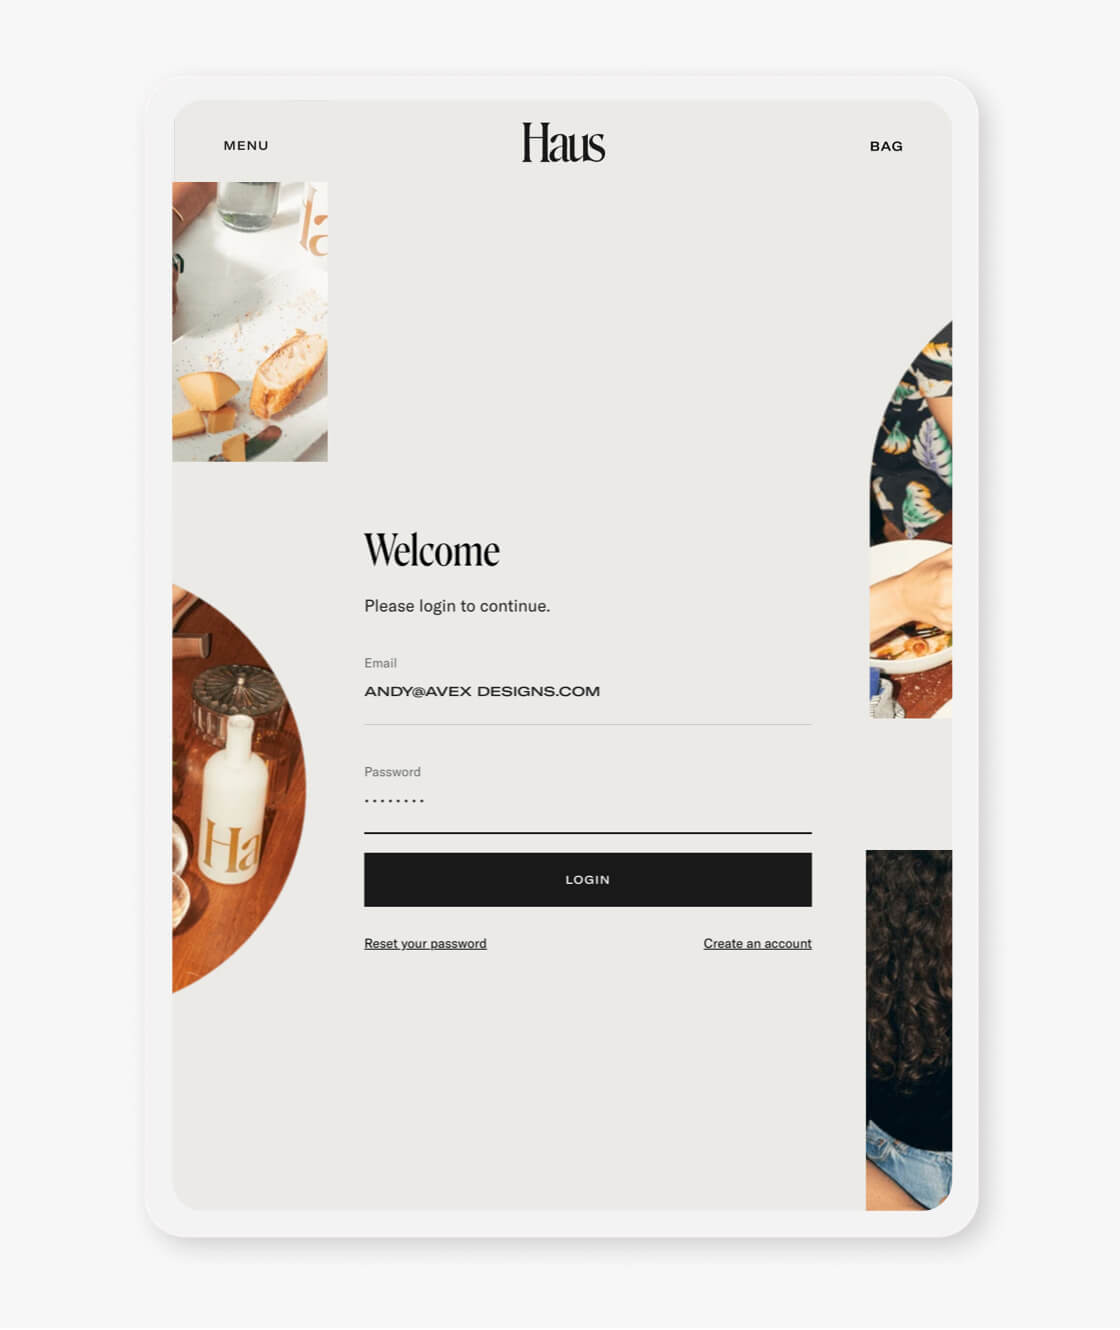 haus shopify website login page on tablet